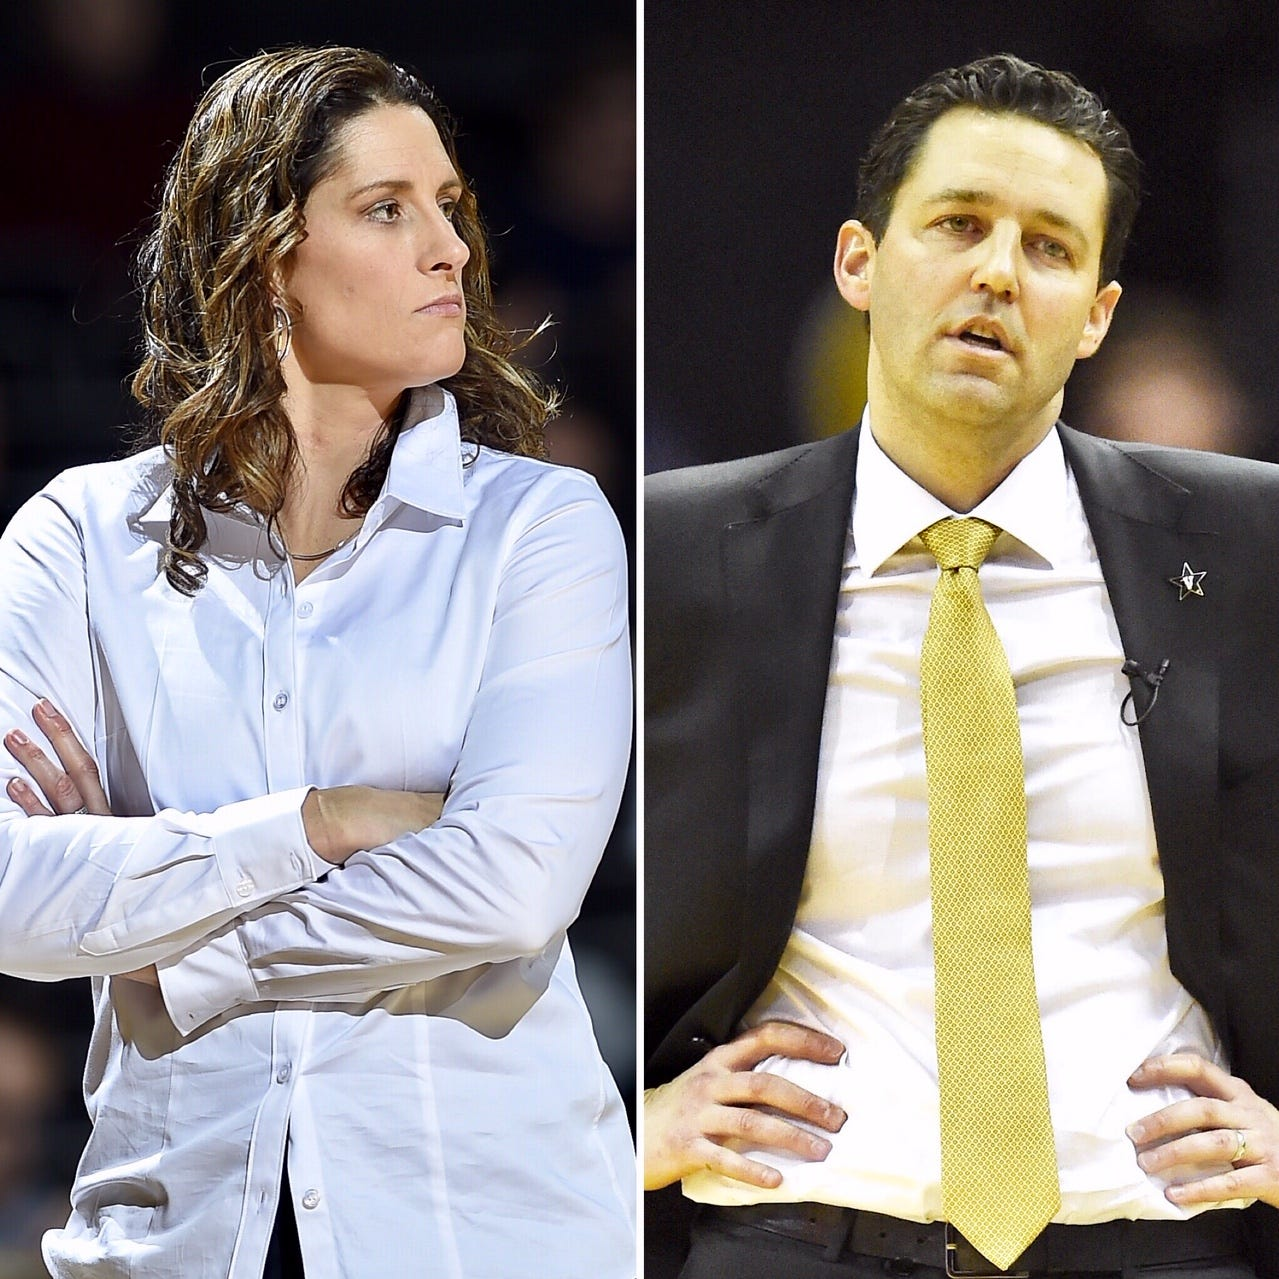 Bryce Drew leads Vanderbilt to worst season ever, so why would next year be better?